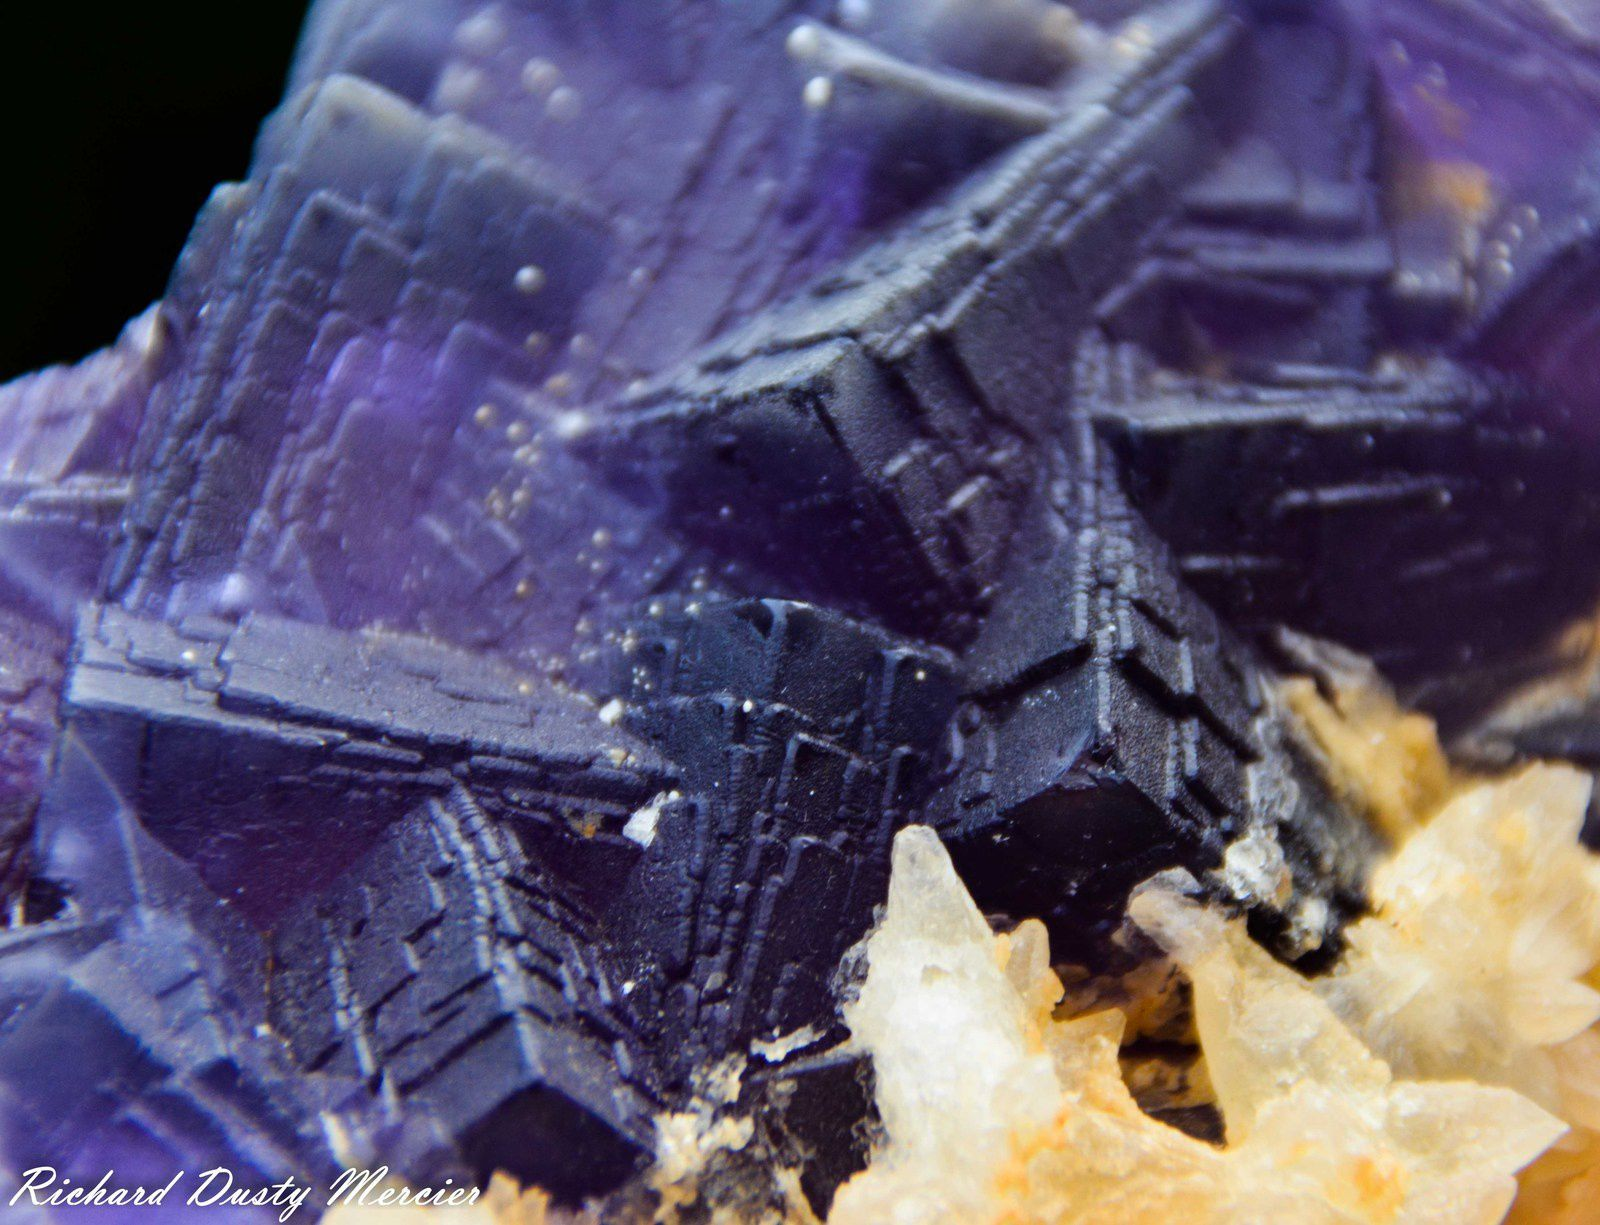 Fluorite with Calcite from Sanda mine, Loralai District, Balochistan, Pakistan